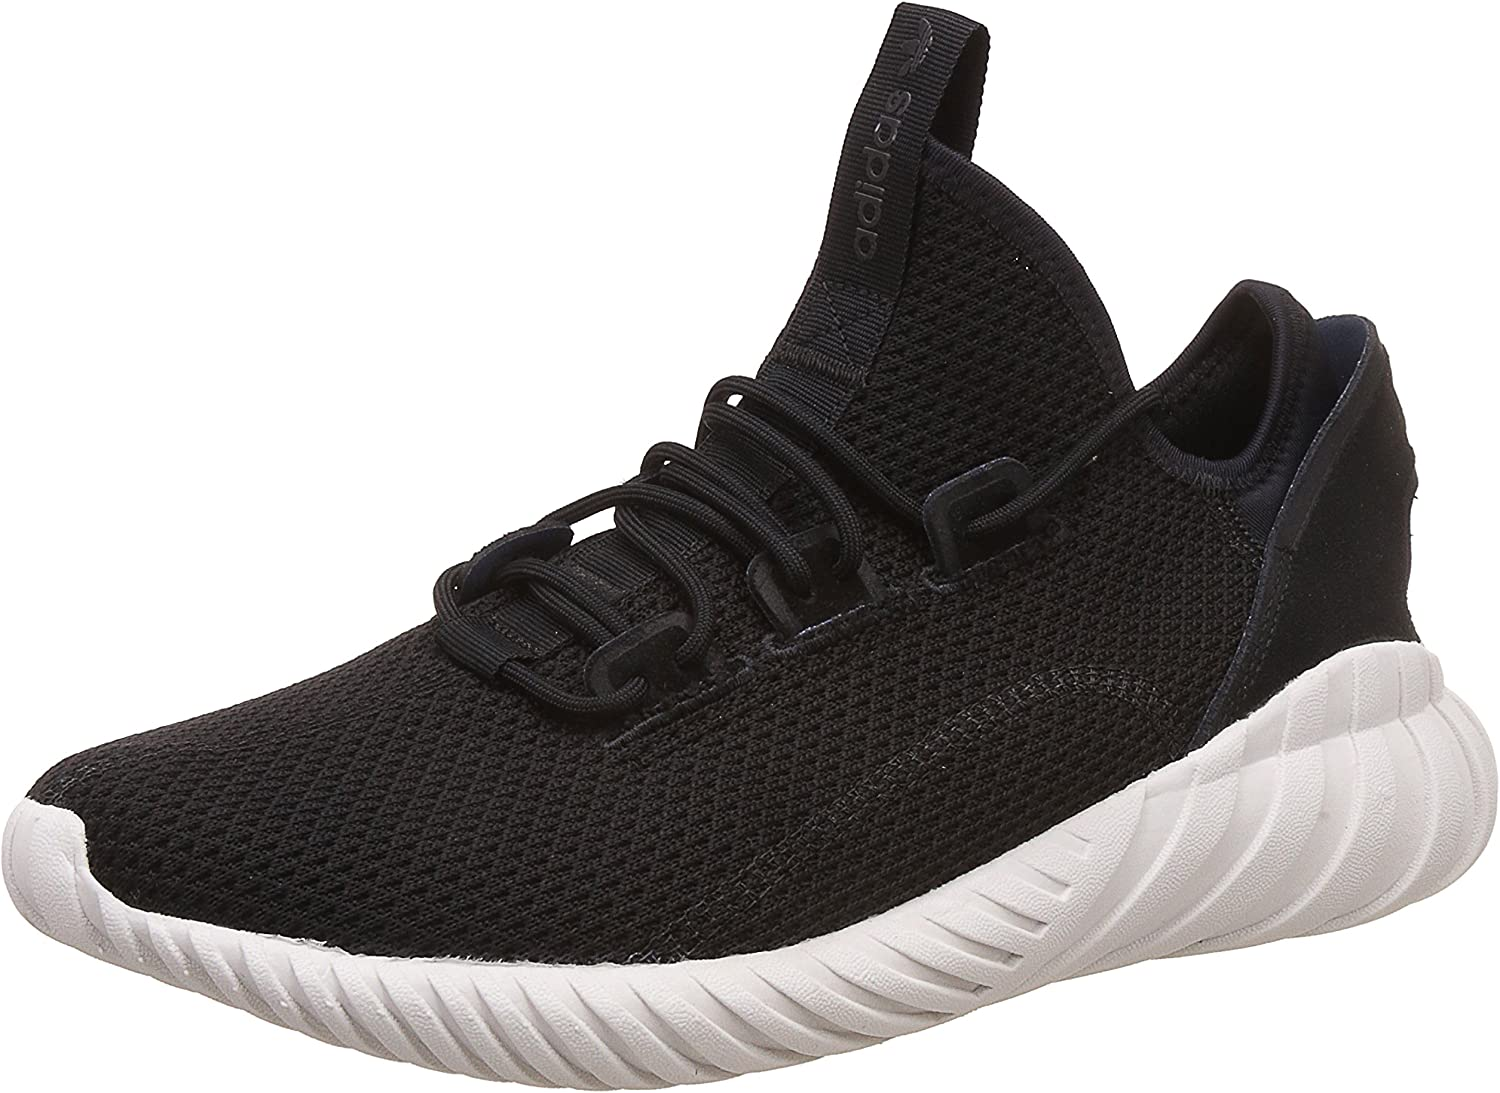 Adidas Originals Tubular Doom - Calcetín para hombre, color negro y blanco